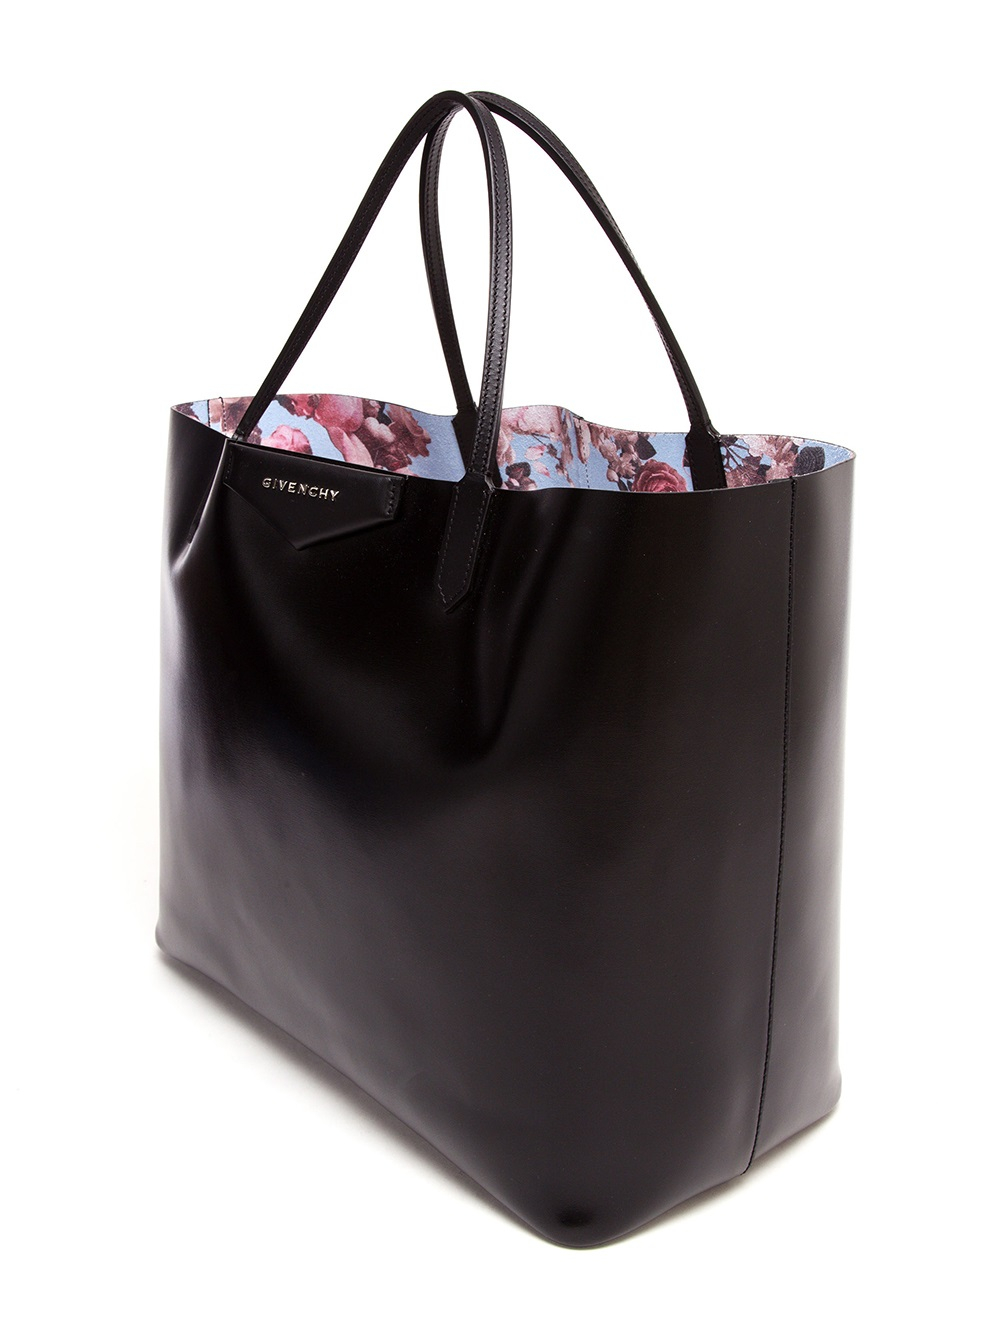 Givenchy Antigona Faux Leather Tote Bag in Black | Lyst